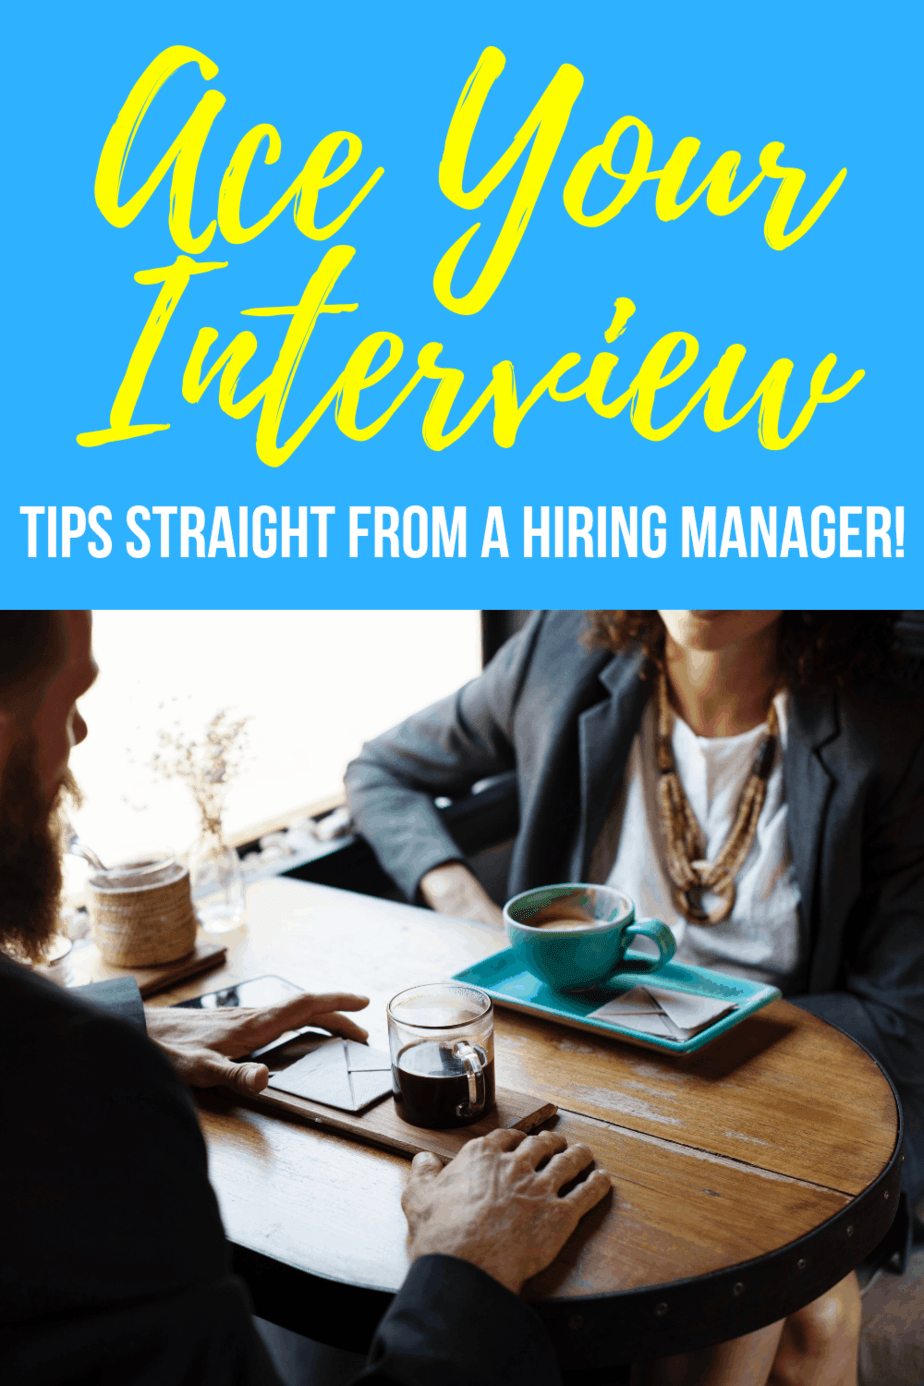 Ace Your Interview: Job Hunting Tips Straight From A Hiring Manager - Chaotically Yours